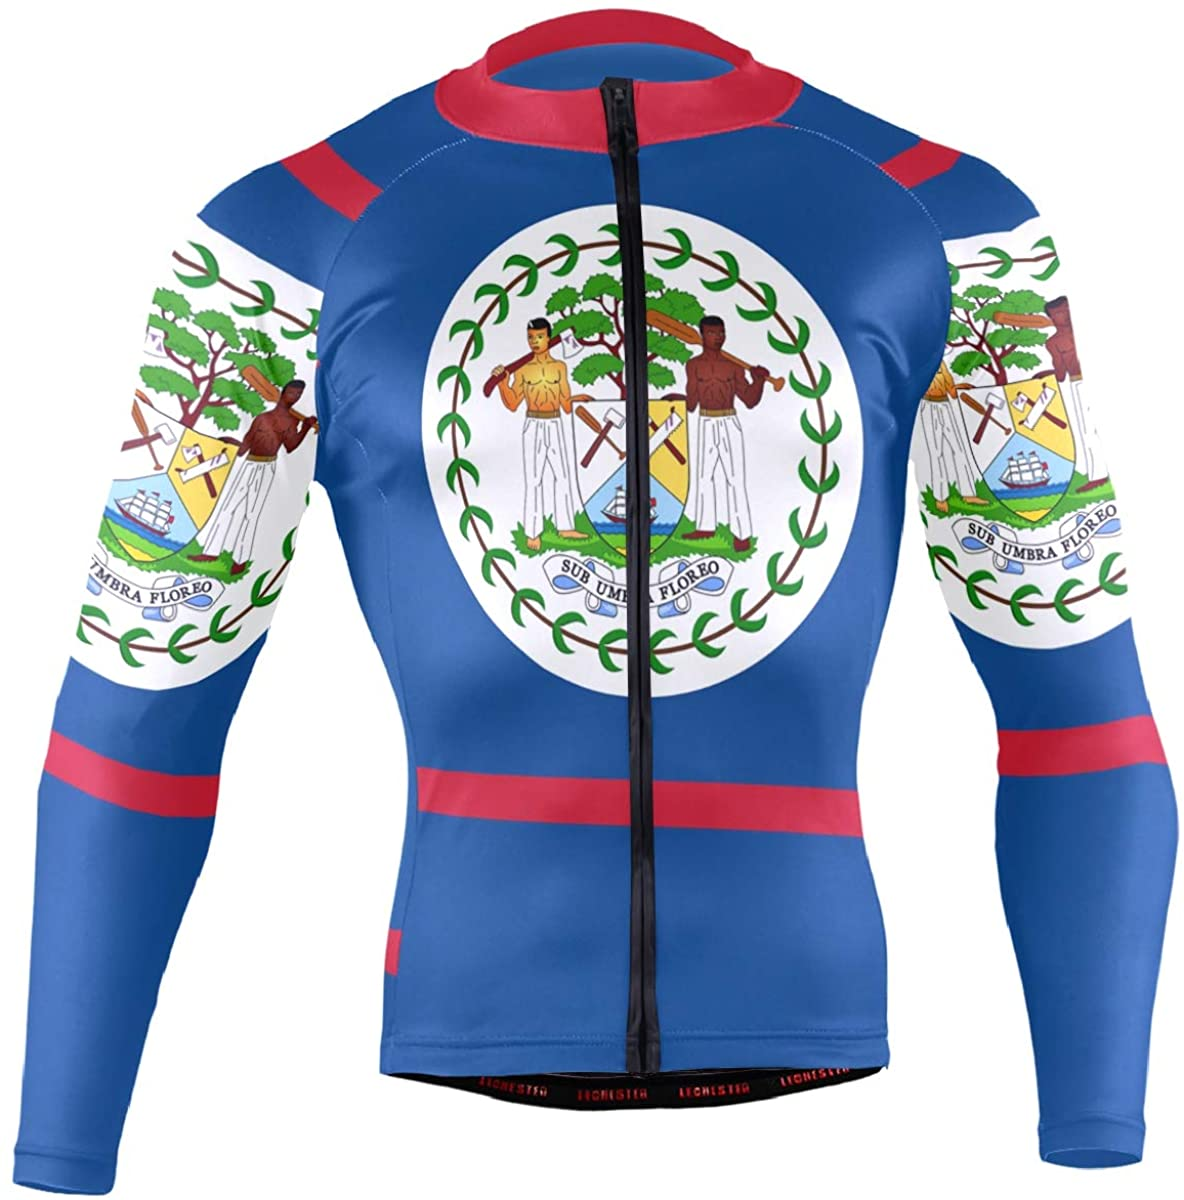 CHINEIN Men's Cycling Jersey Long Sleeve with 3 Rear Pockets Suit Belize Flag